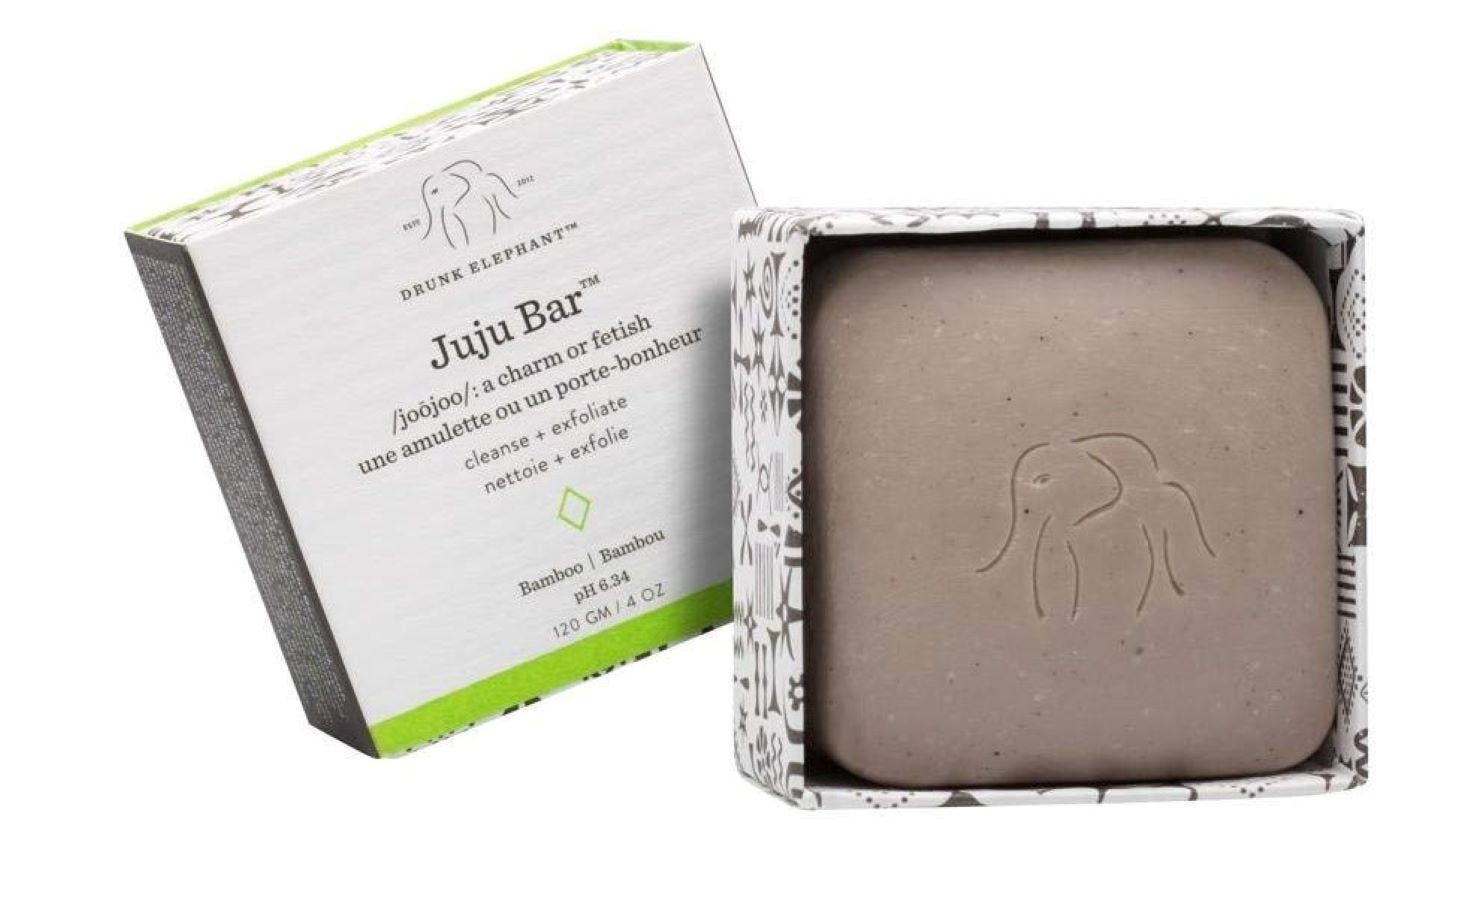 The JuJu Bar in its box next to the lid.